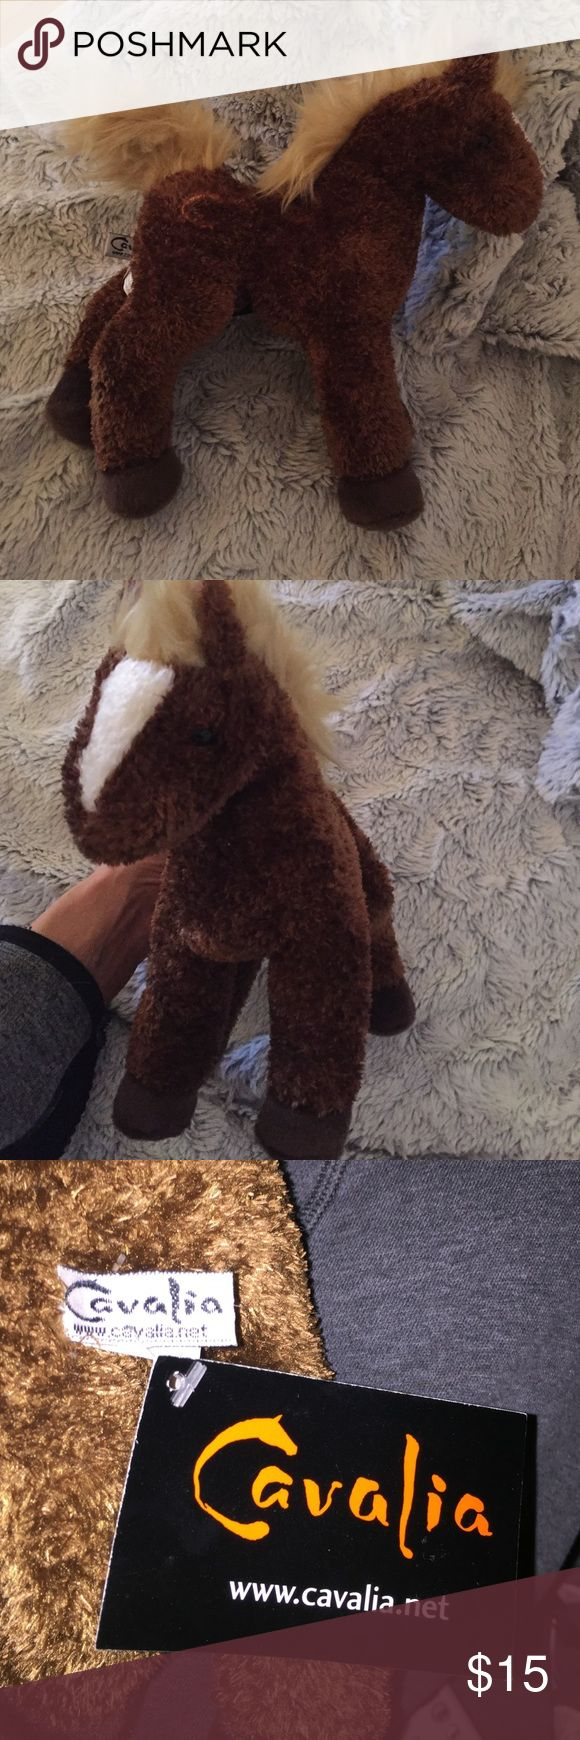 Stuffed Cavalia horse Small stuffed horse bought at the cavalia horse show. Brand new with tags. Brown and tan with white on nose. Cavalia Horse Show Other